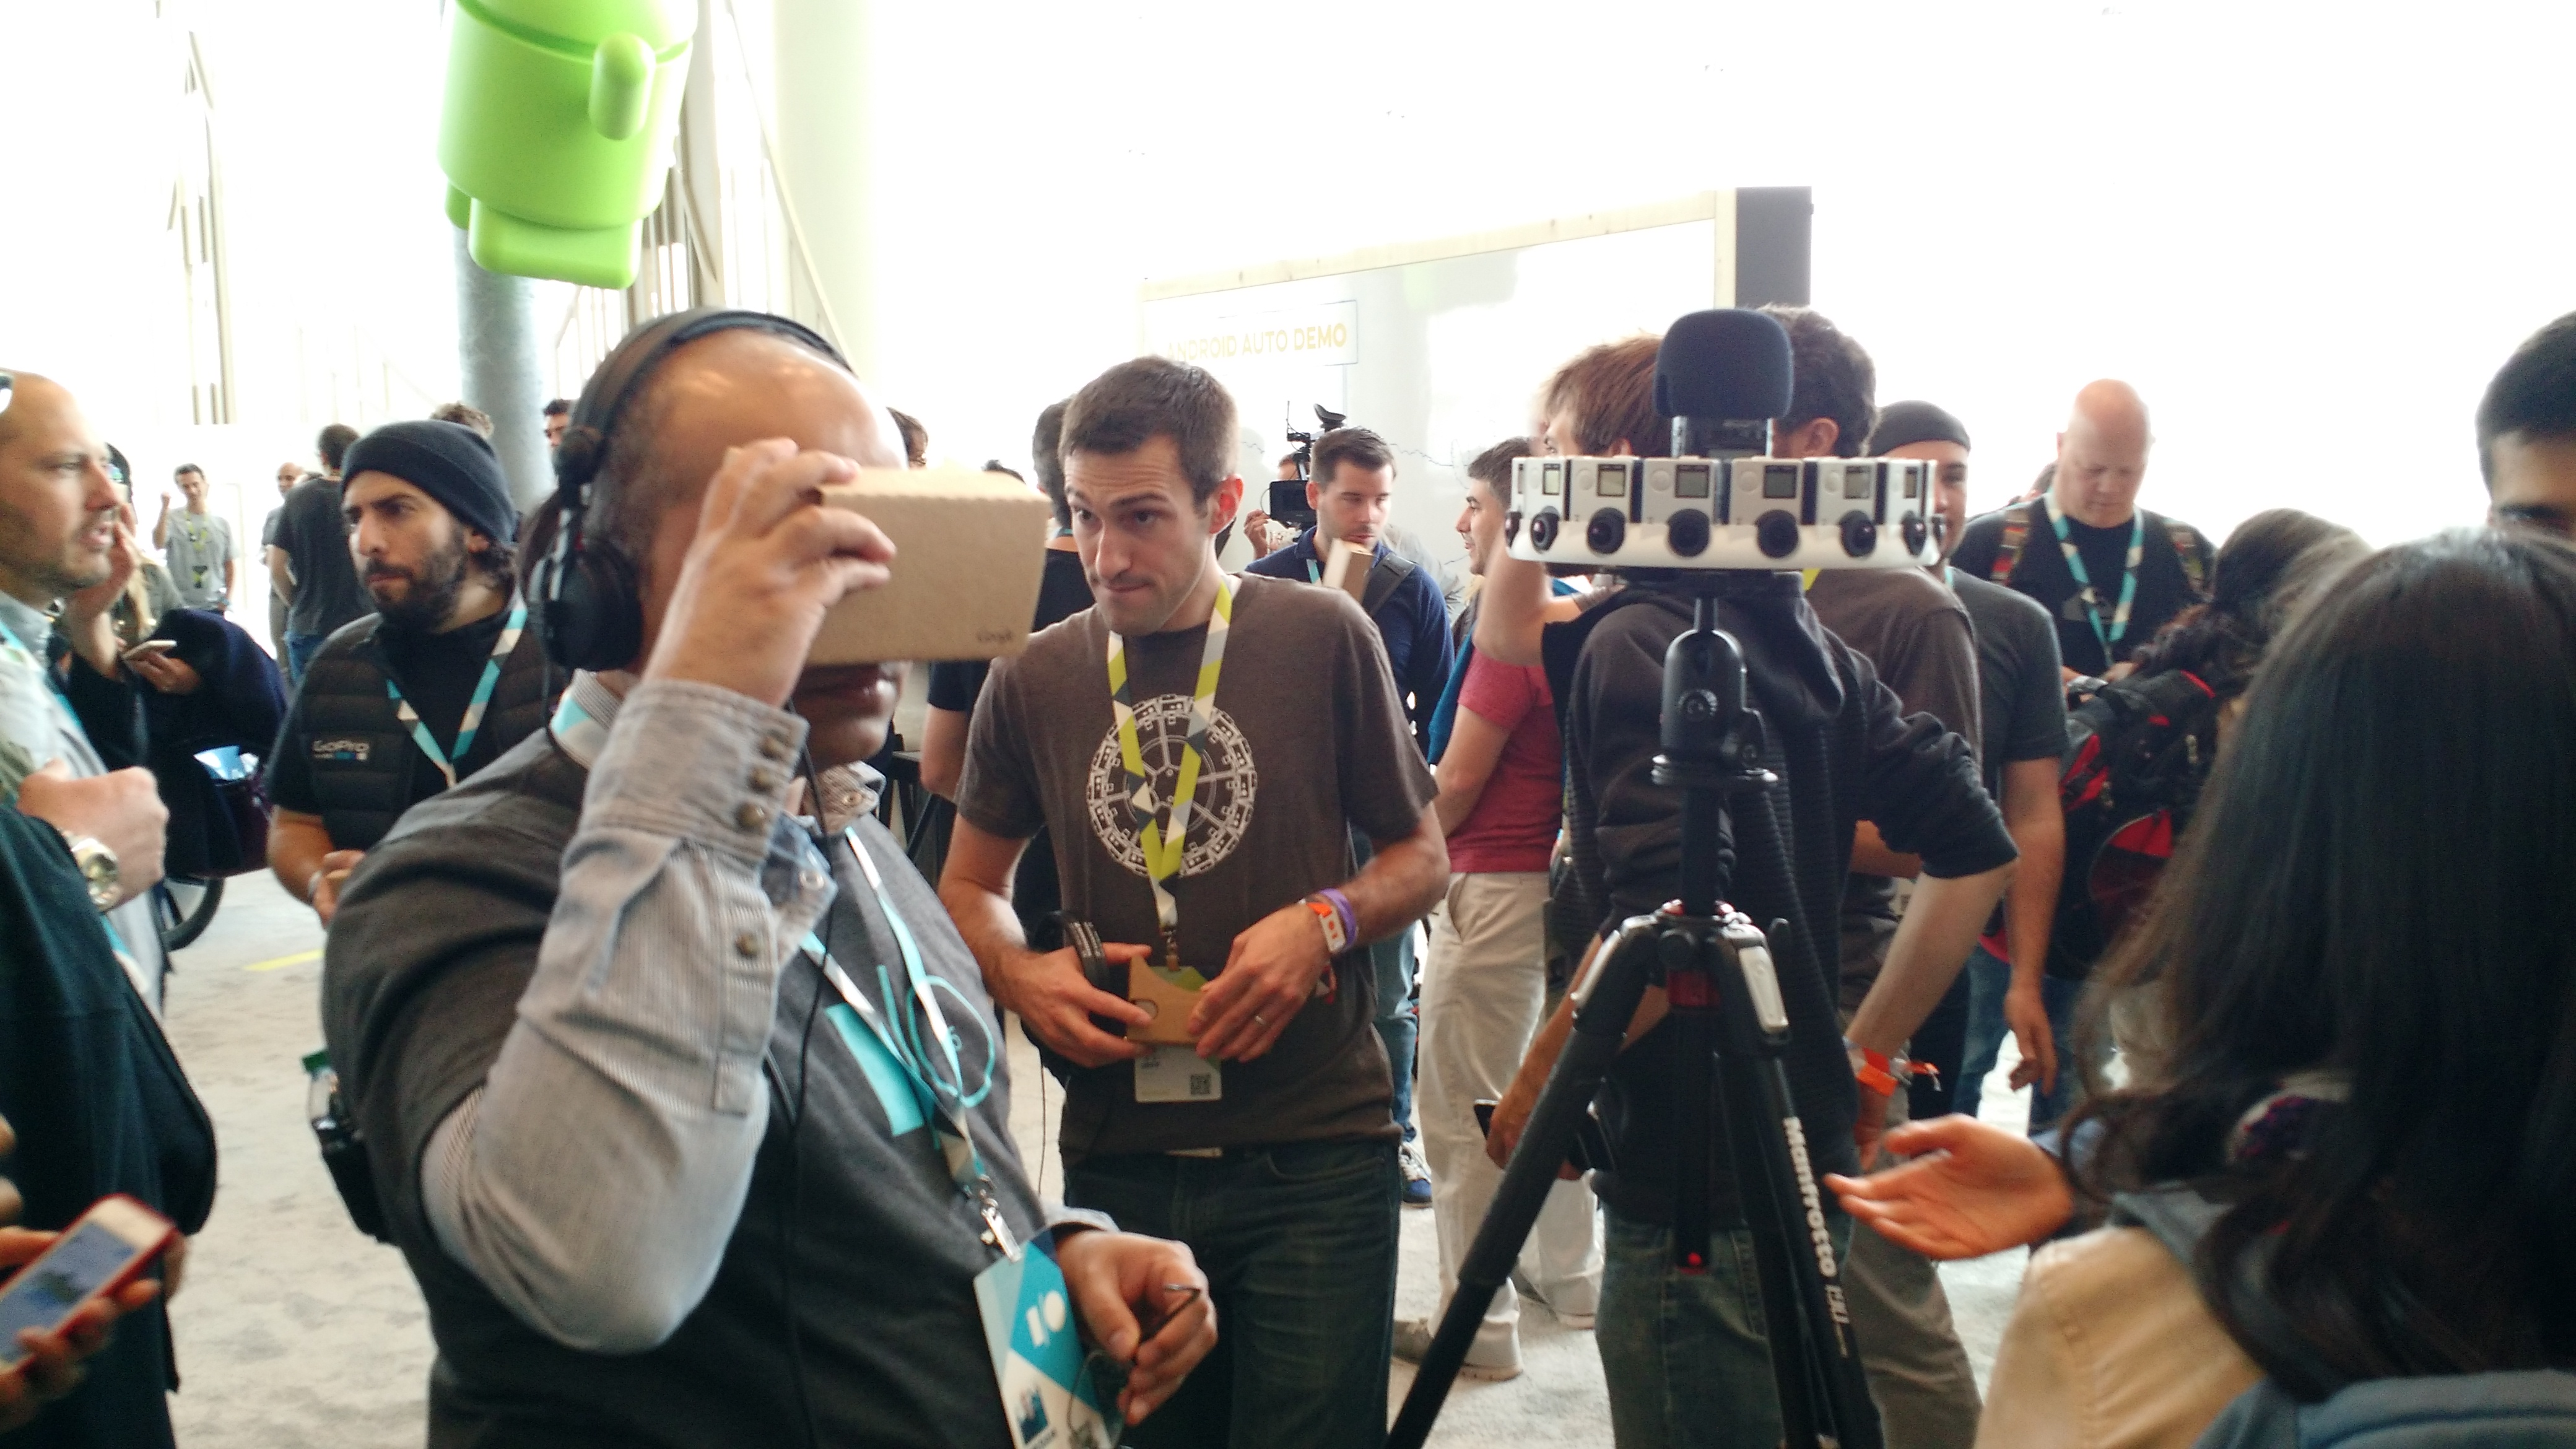 The GoPro Odyssey rig at the Google I/O conference in San Francisco on May 28.